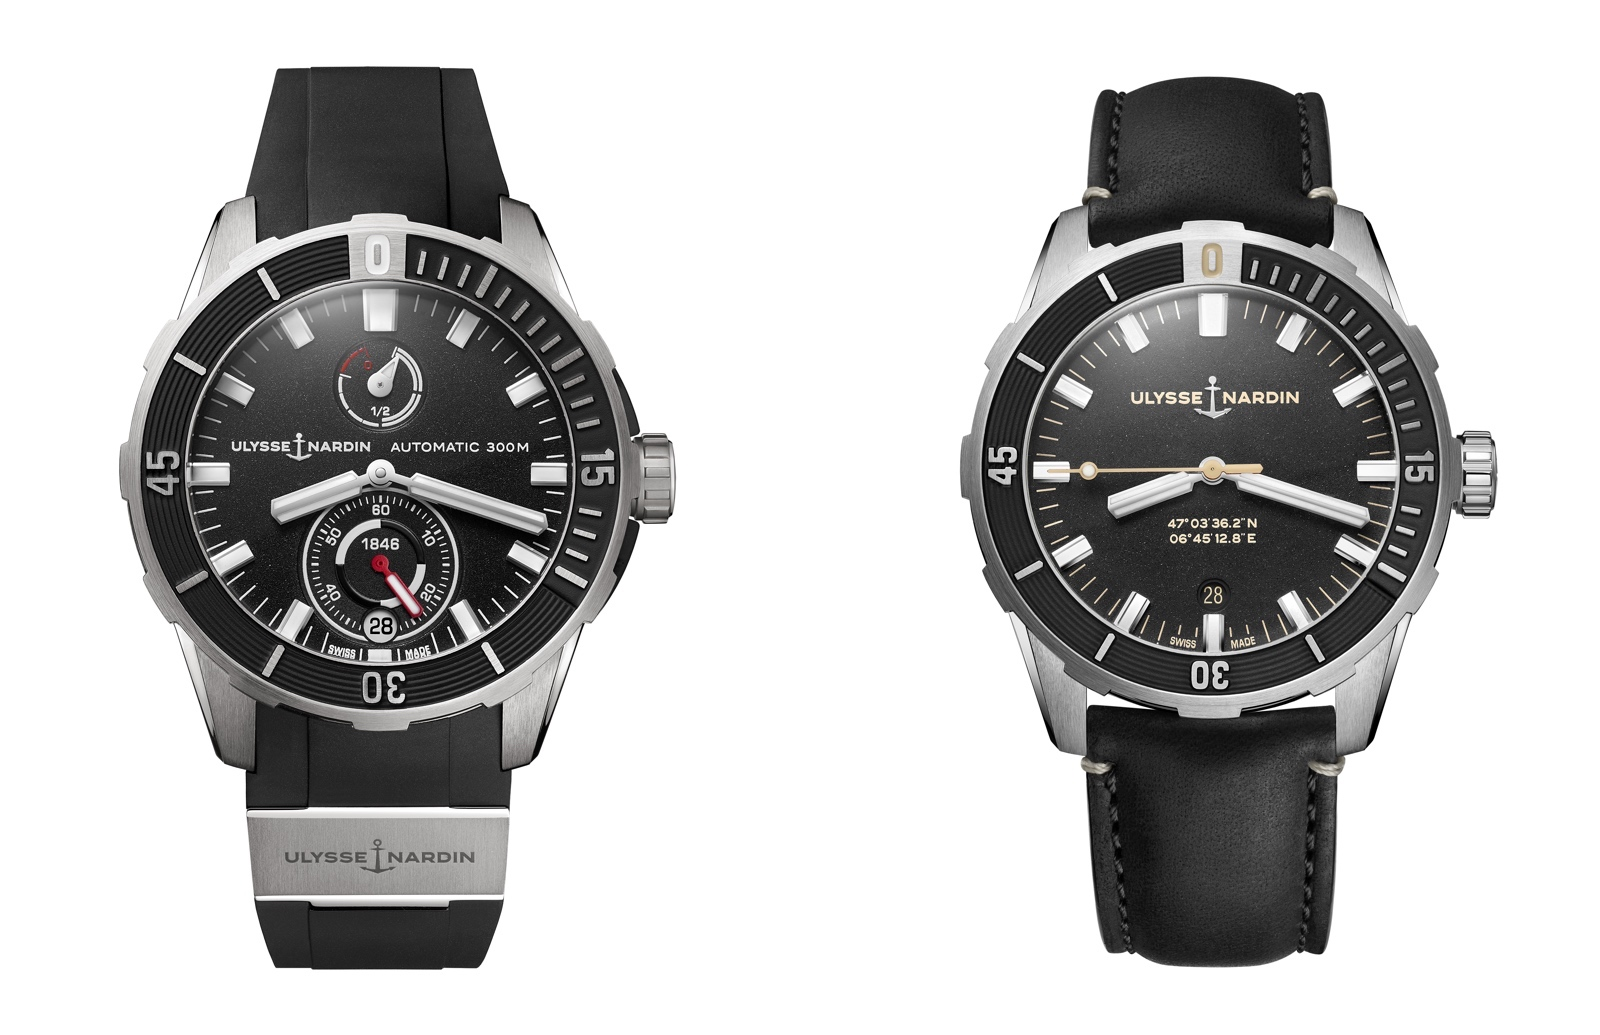 Ulysse Nardin Diver Chronometer vs Diver Chronometer 42